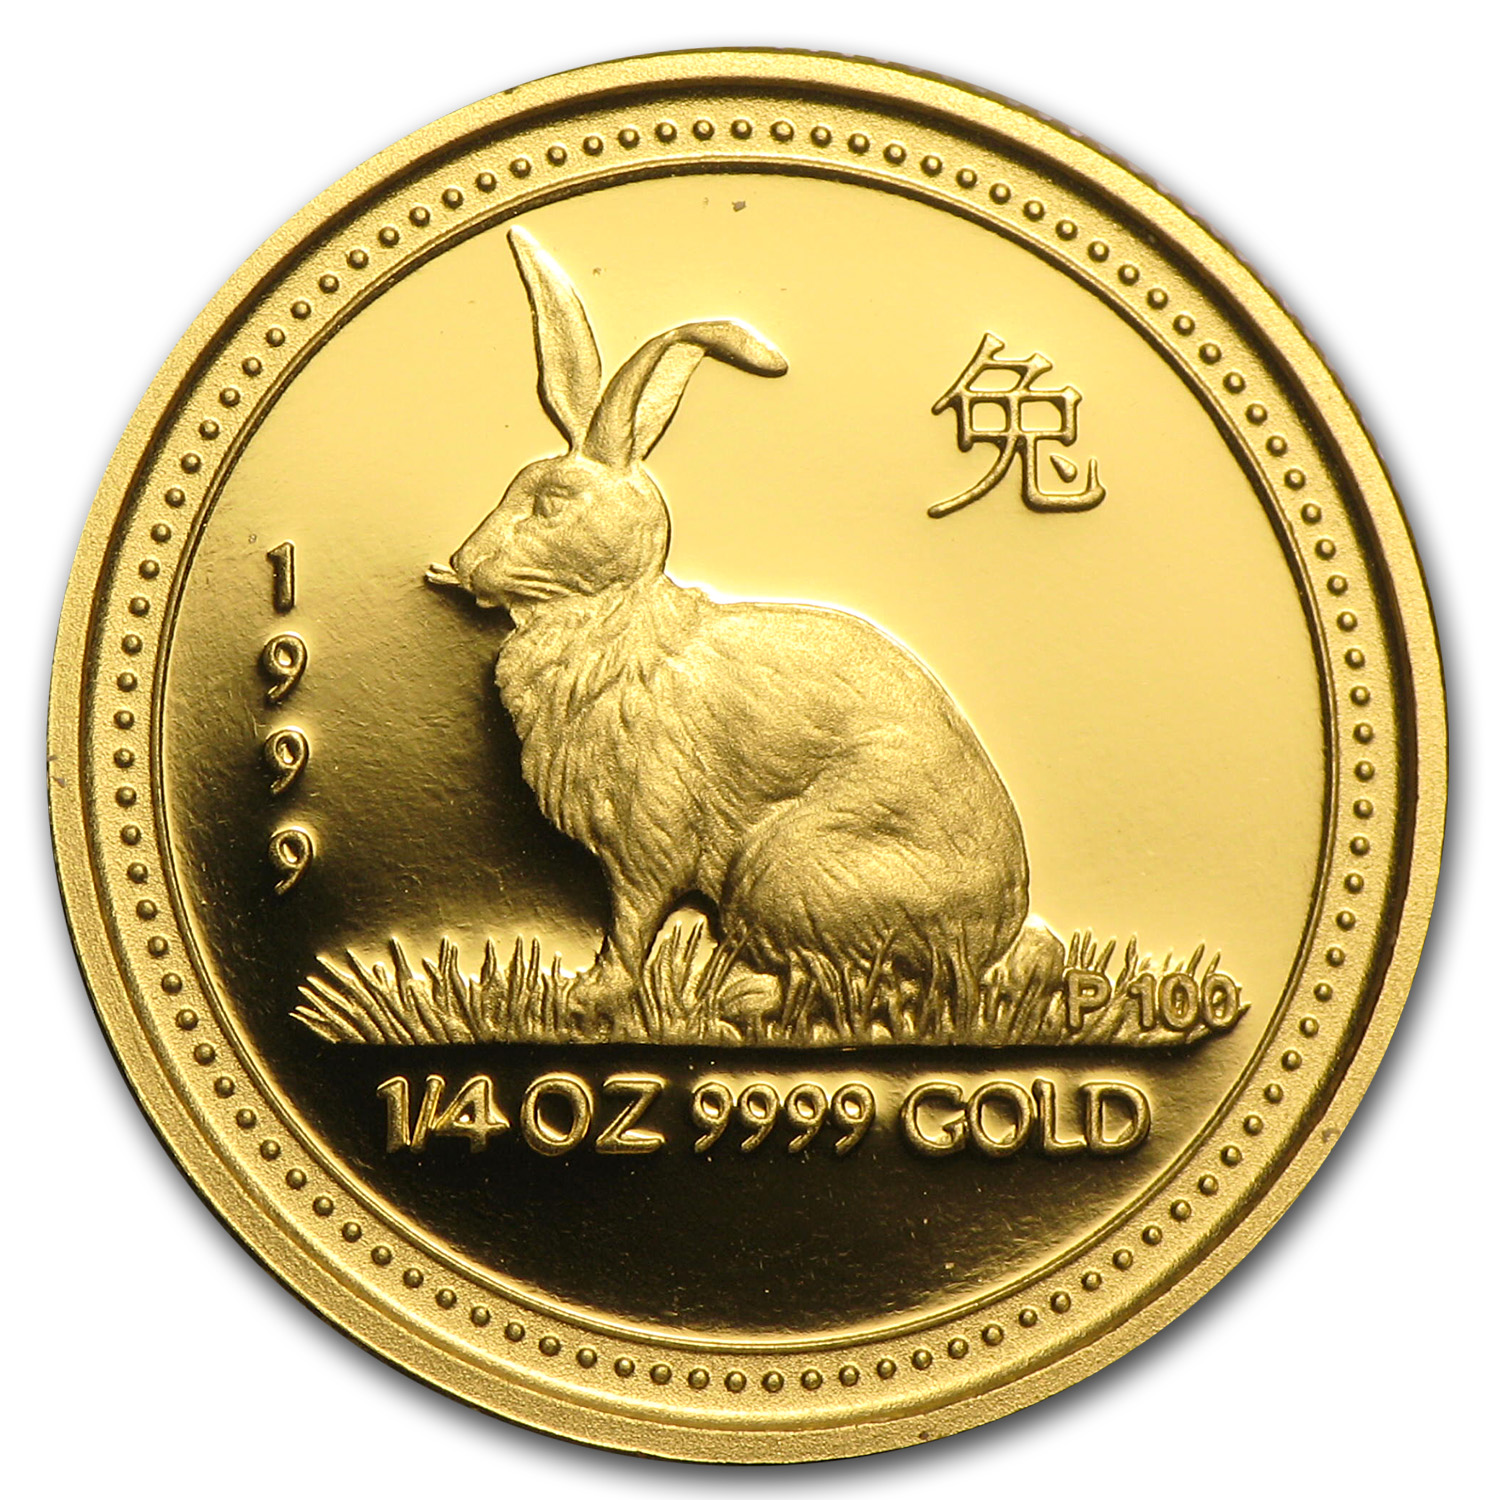 1999 1/4 oz Proof Gold Year of the Rabbit Lunar Coin (Series I)